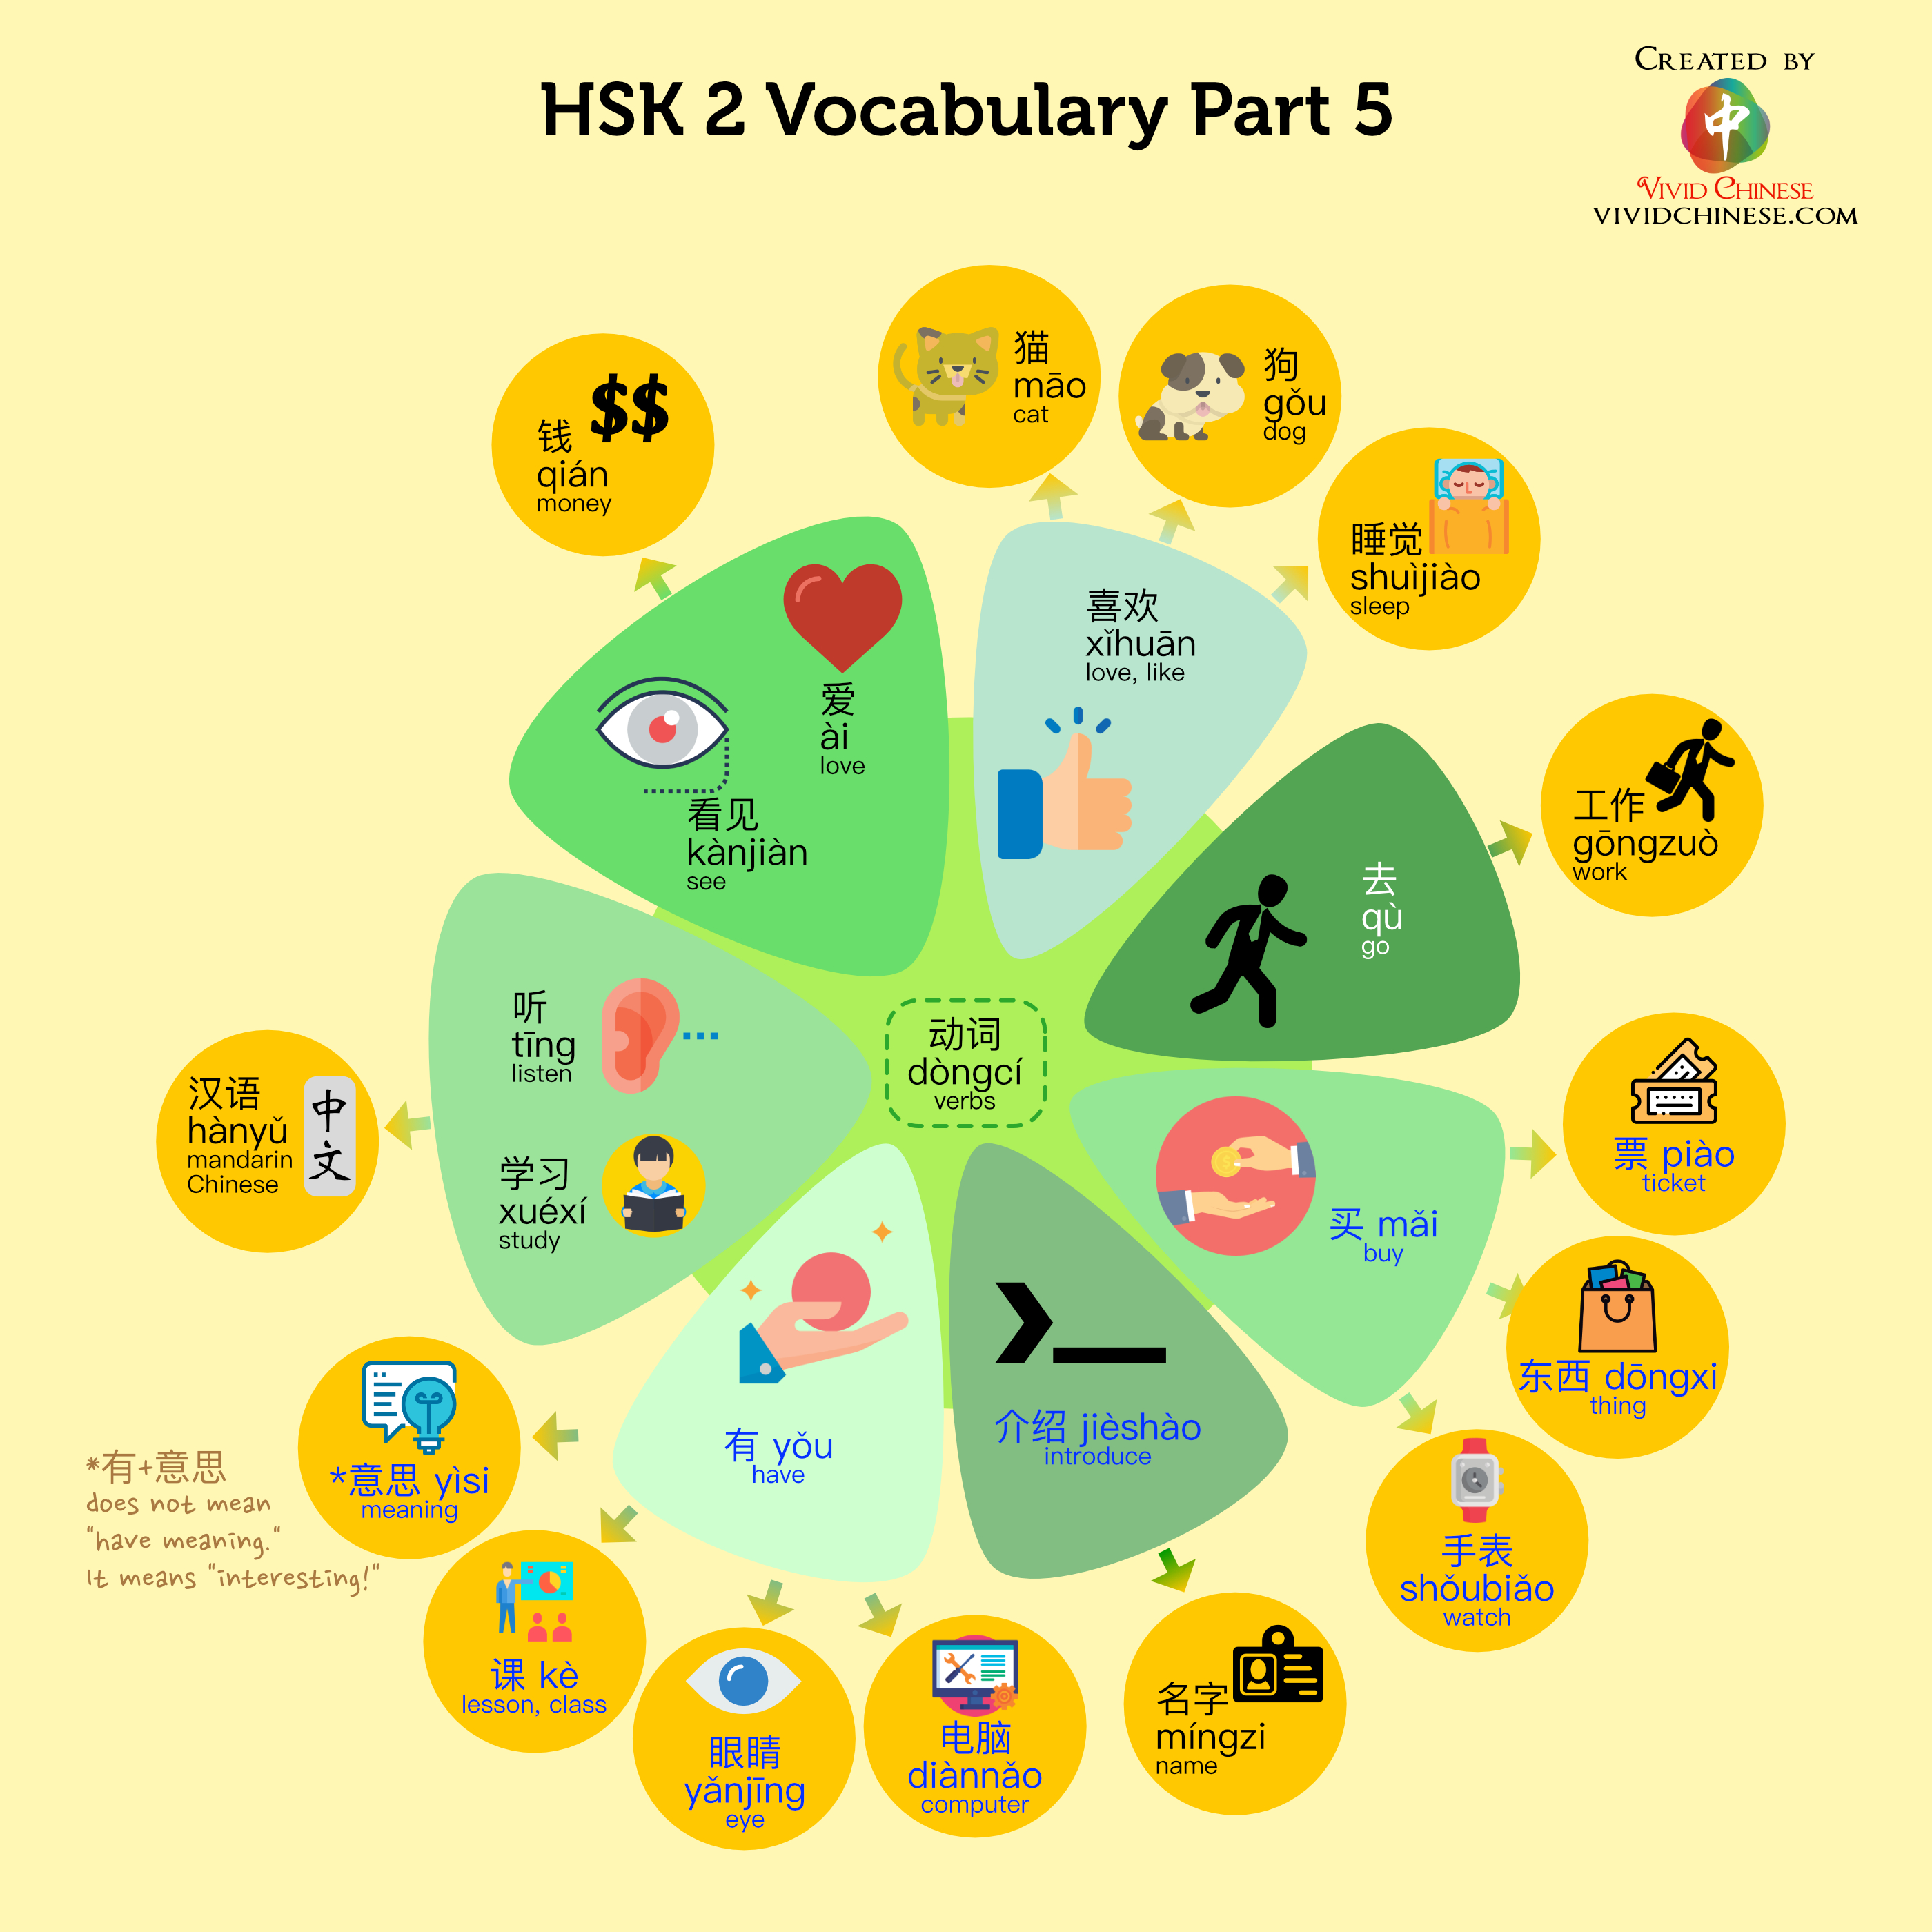 Hsk 2 Vocabulary Part 5